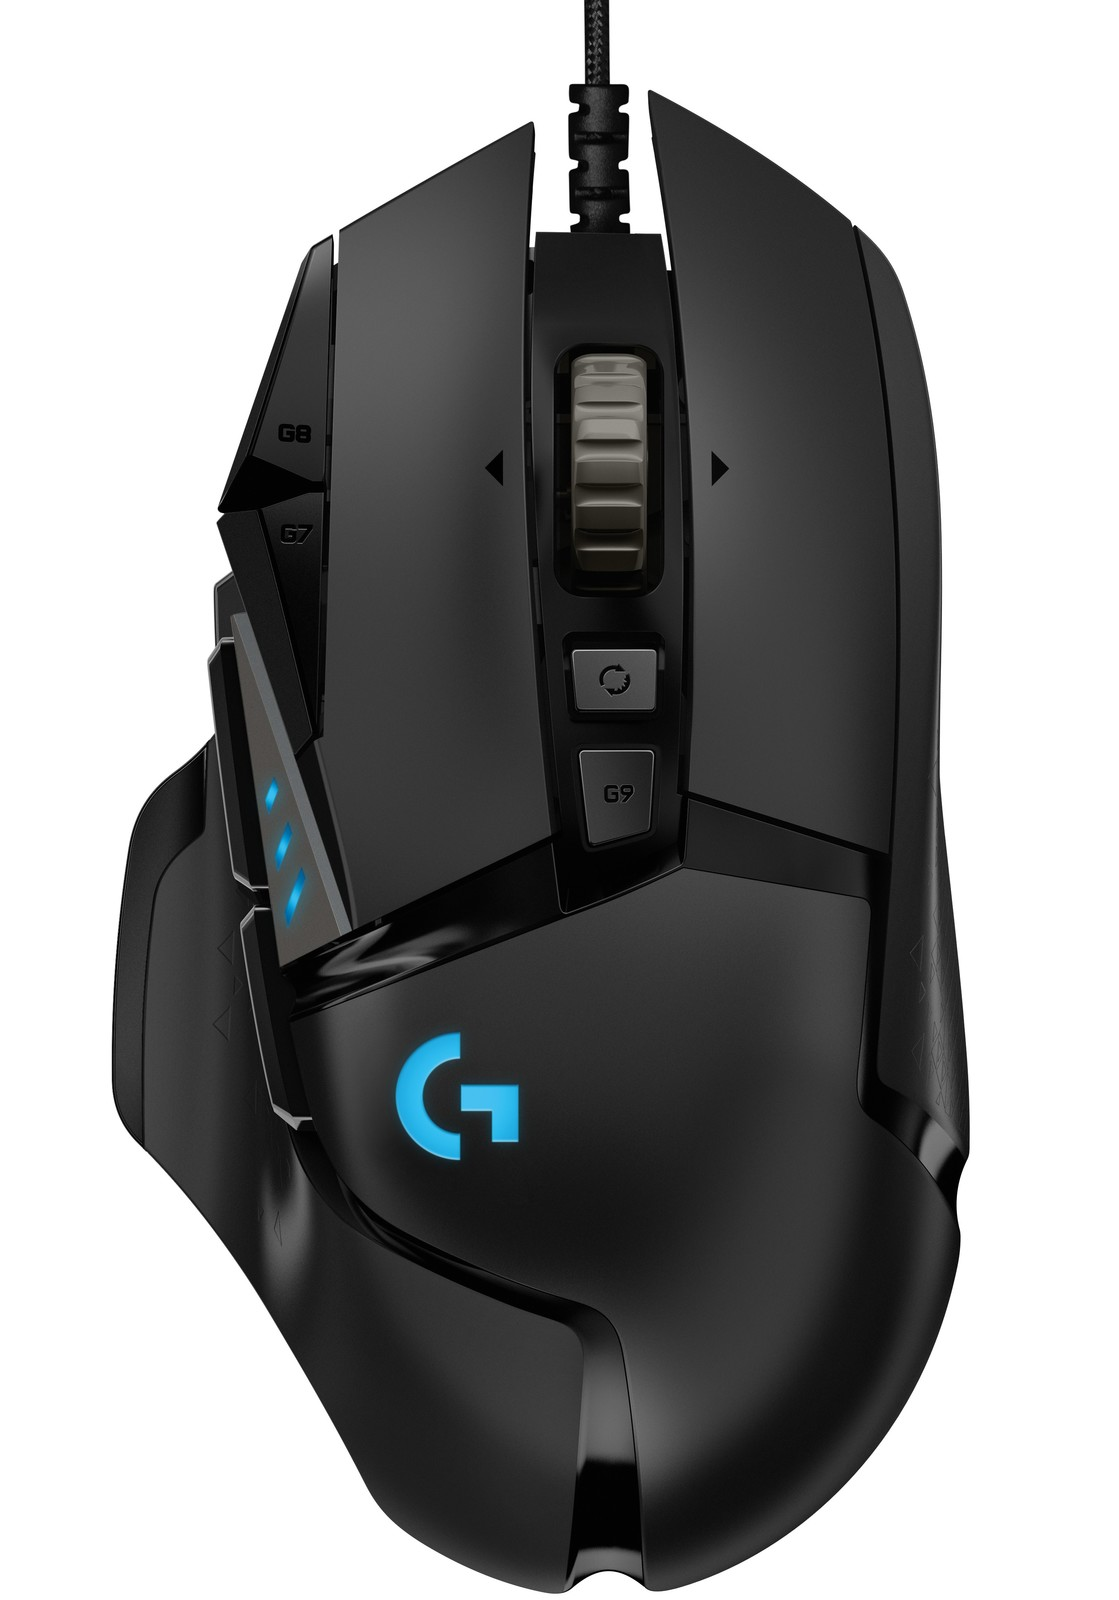 Logitech G502 HERO RGB High Performance Gaming Mouse for  image